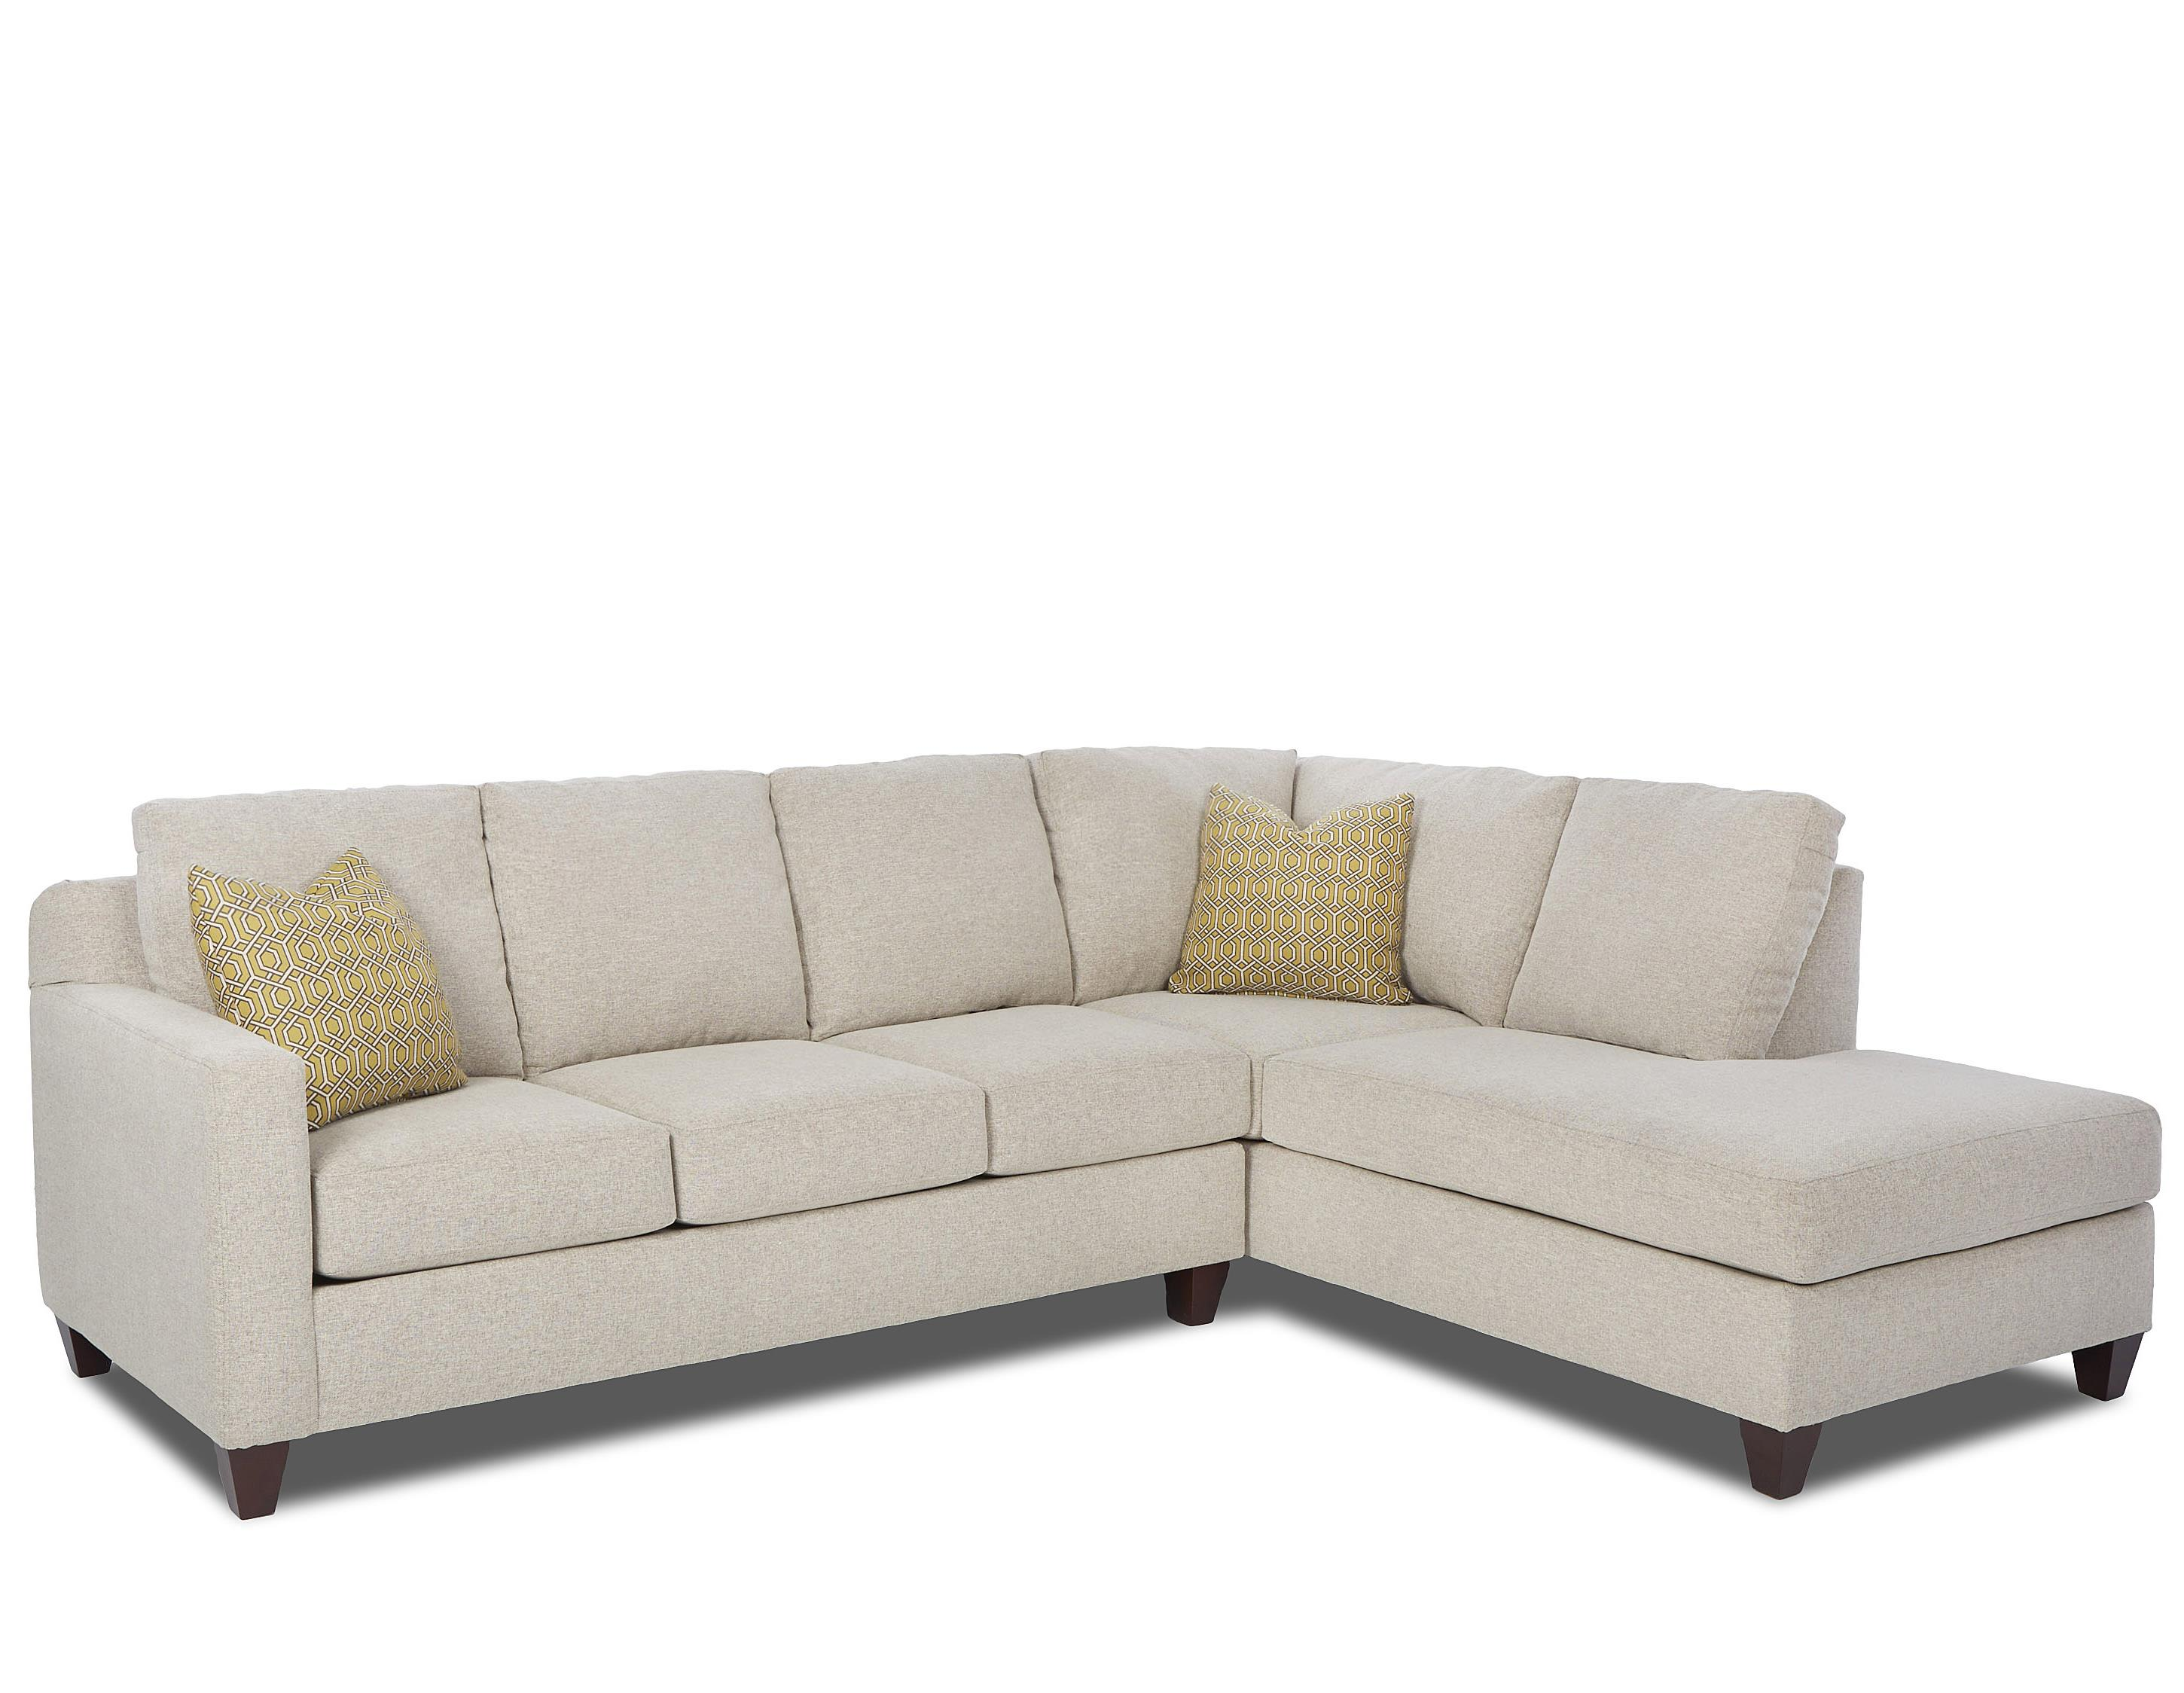 Klaussner Bosco Sectional - Item Number K51600L S+K51600R SCHS-GormanBirch  sc 1 st  Wayside Furniture : sectional sofa left chaise - Sectionals, Sofas & Couches